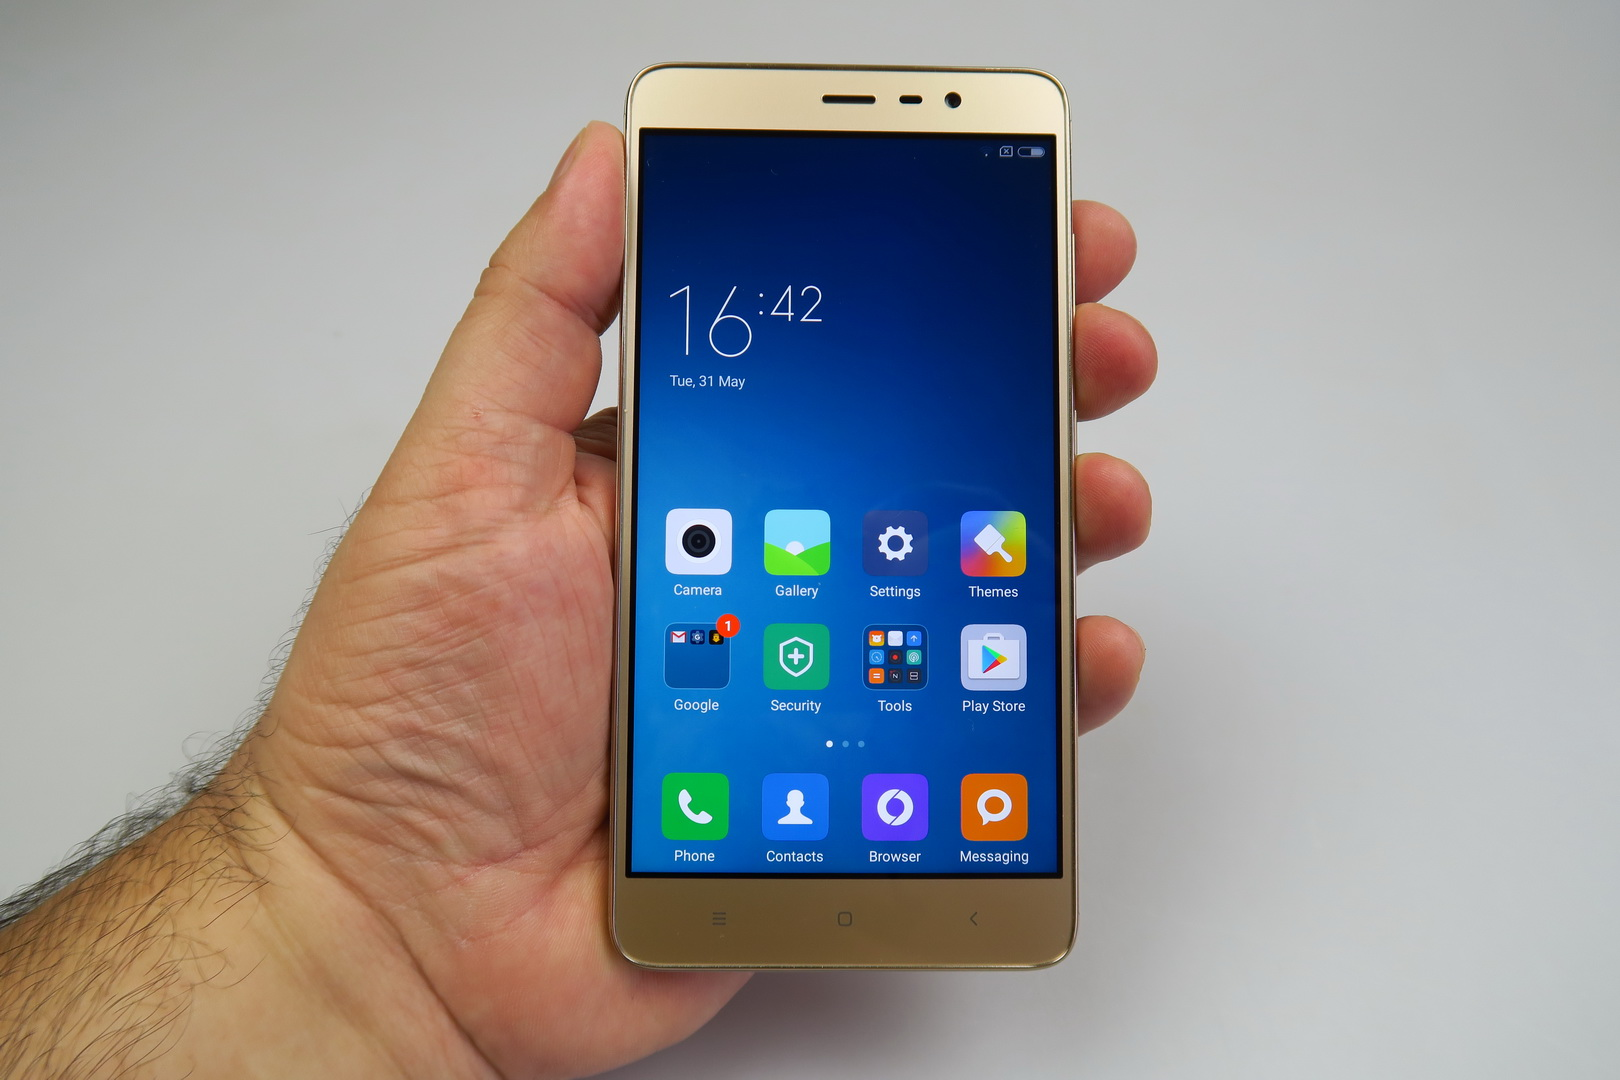 Xiaomi Redmi Note 3 Pro Review MIUI May Not Be For Everyone But This Phone Is Quite The Battery Hitter Too